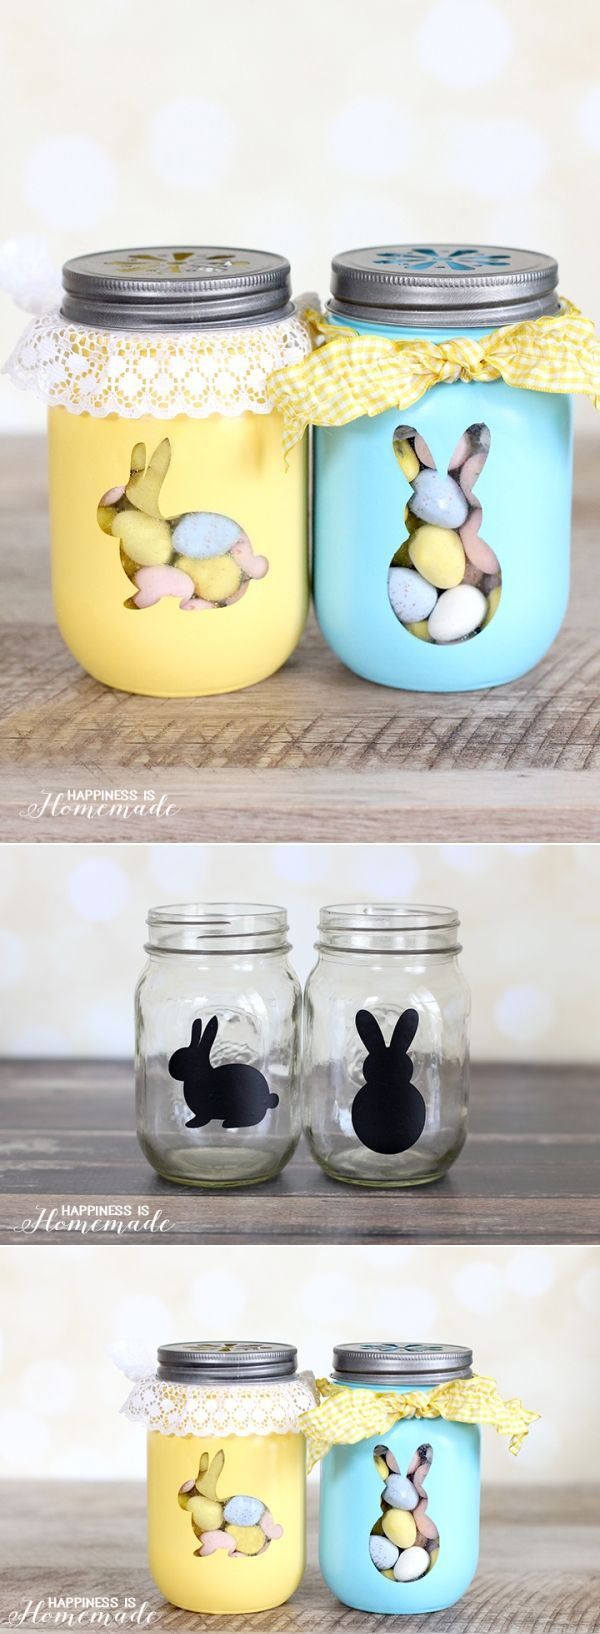 Quick & Easy DIY Easter Bunny treat jars - so cute! Great Easter home decor craft activity!